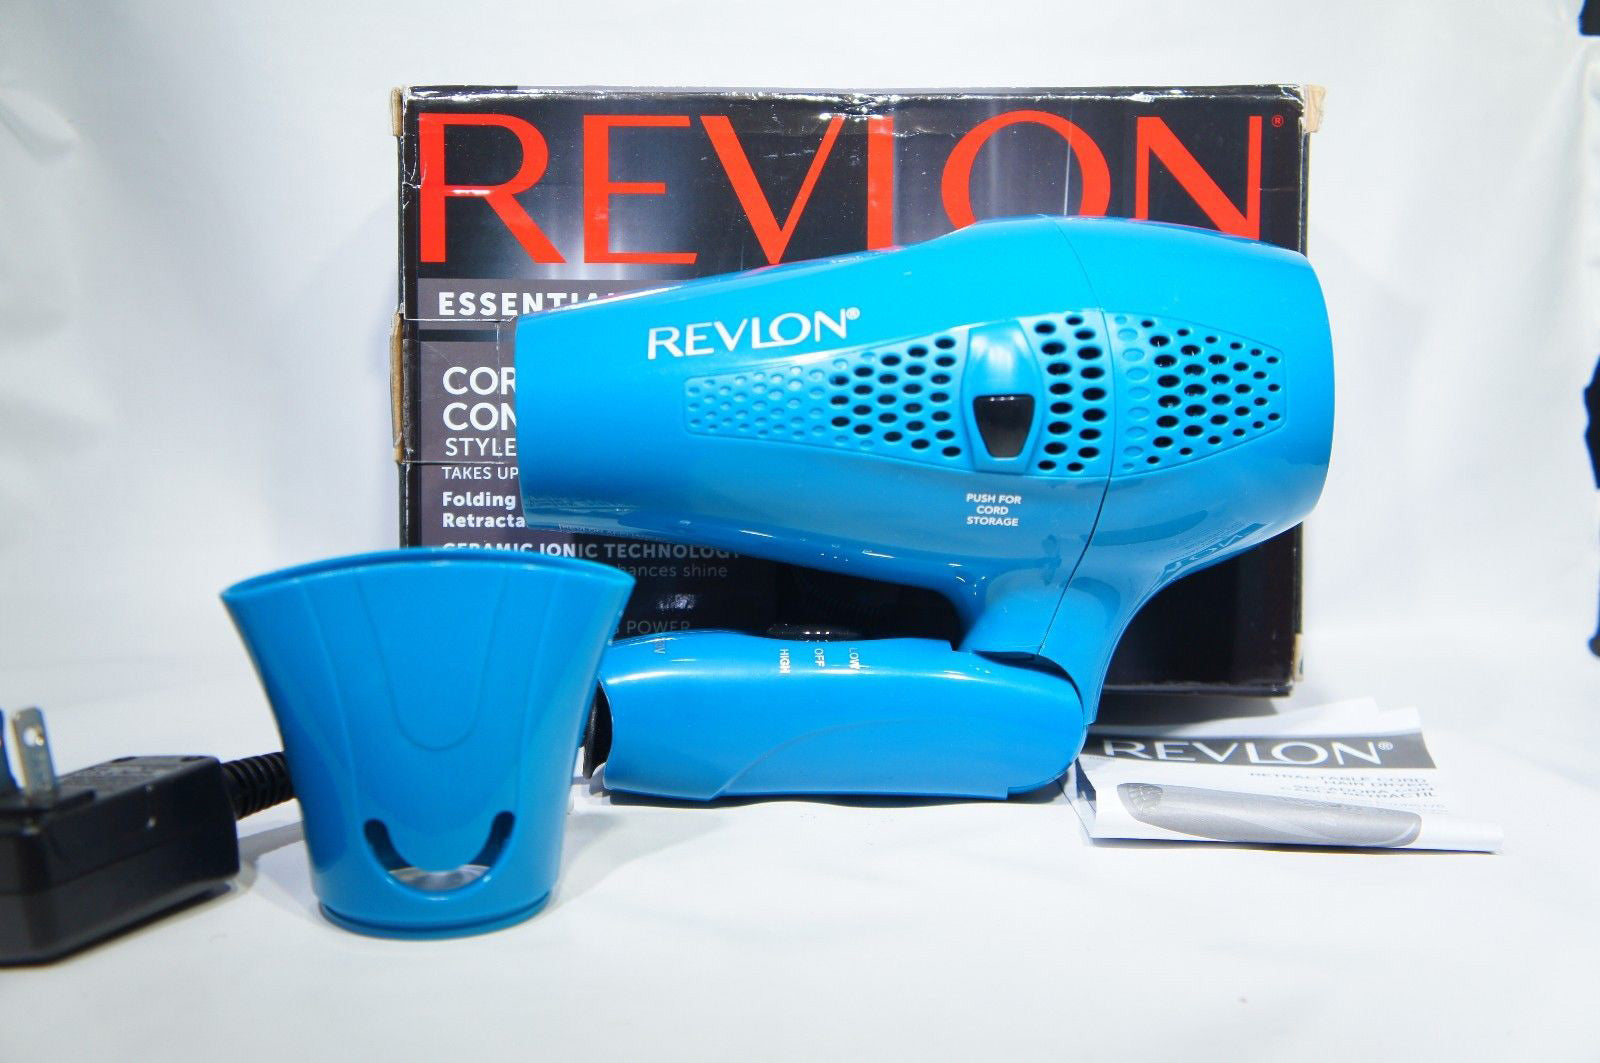 Revlon RVDR5175 1875W Fast Dry Travel Hair Dryer (Like New)